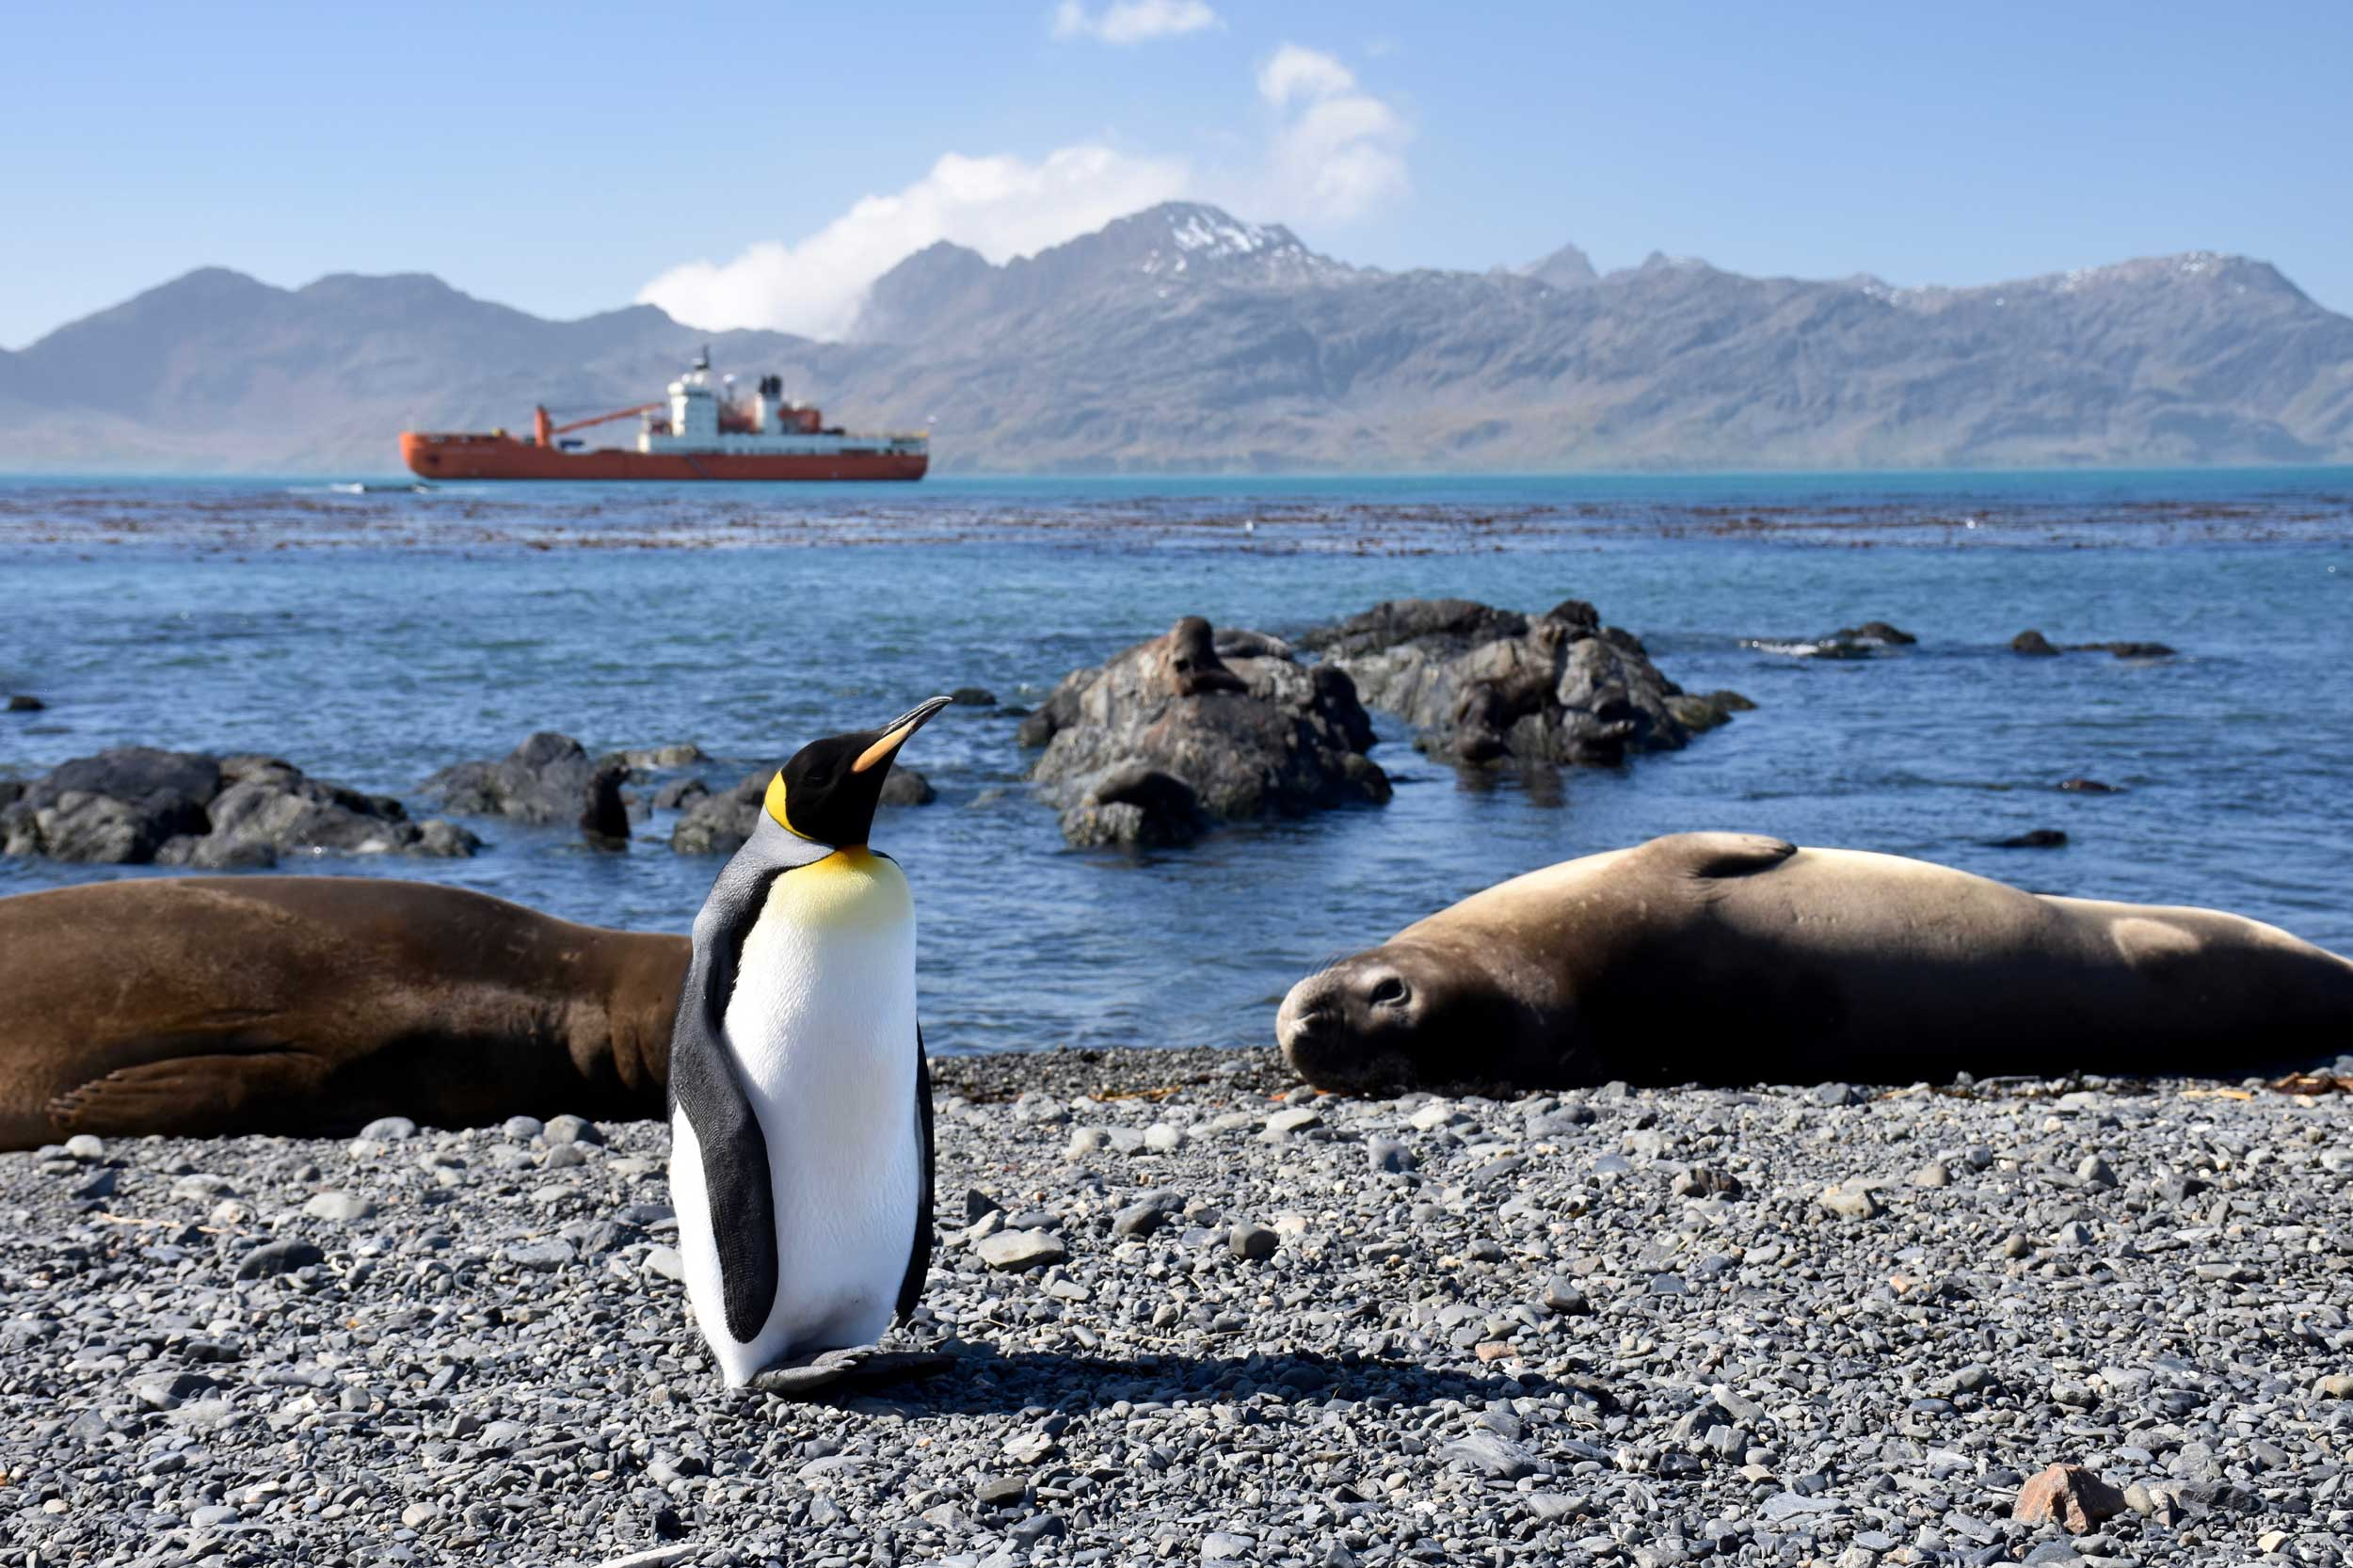 A king penguin and seals on the coast of South Georgia Island in the south Atlantic Ocean, with the Russian research vessel Akademik Treshnikov in the background. The ship spent three months circumnavigating Antarctica in early 2017. Image credit: Melissa Duhaime